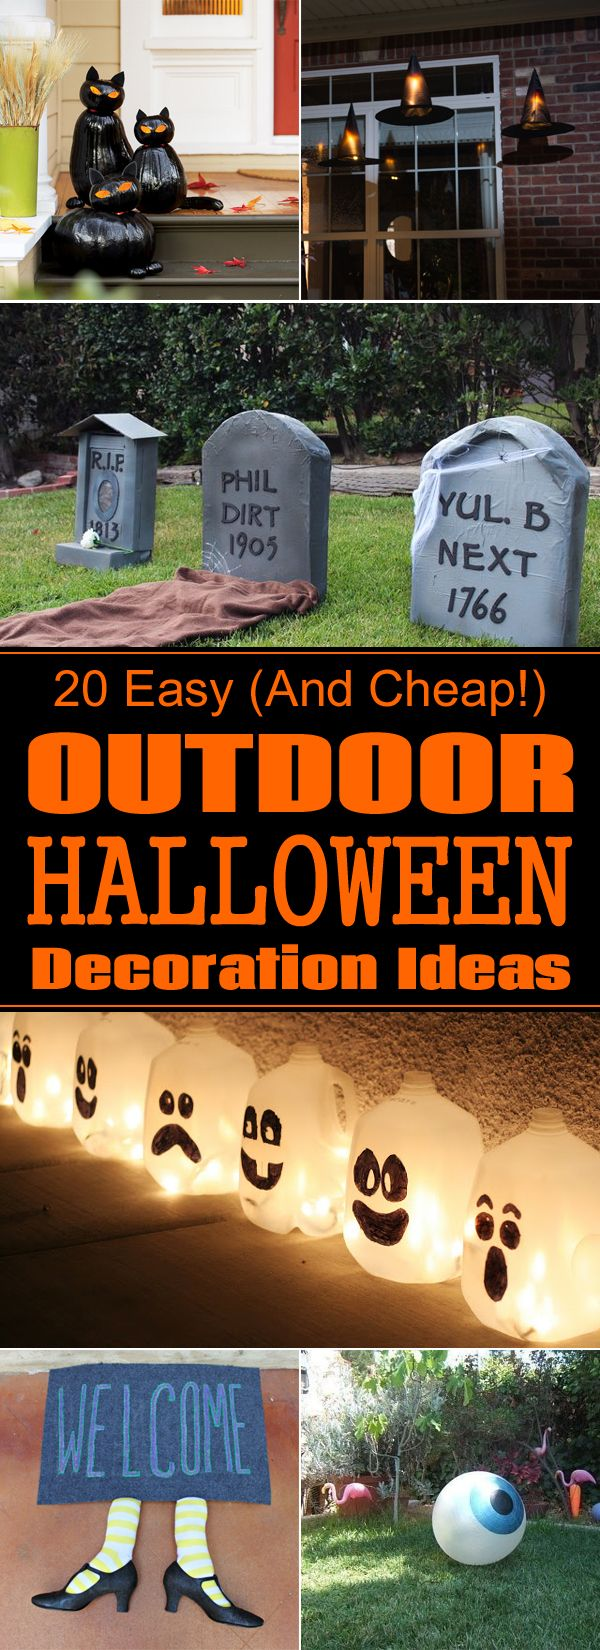 20 easy and cheap diy outdoor halloween decoration ideas - Cheap Halloween Yard Decorations